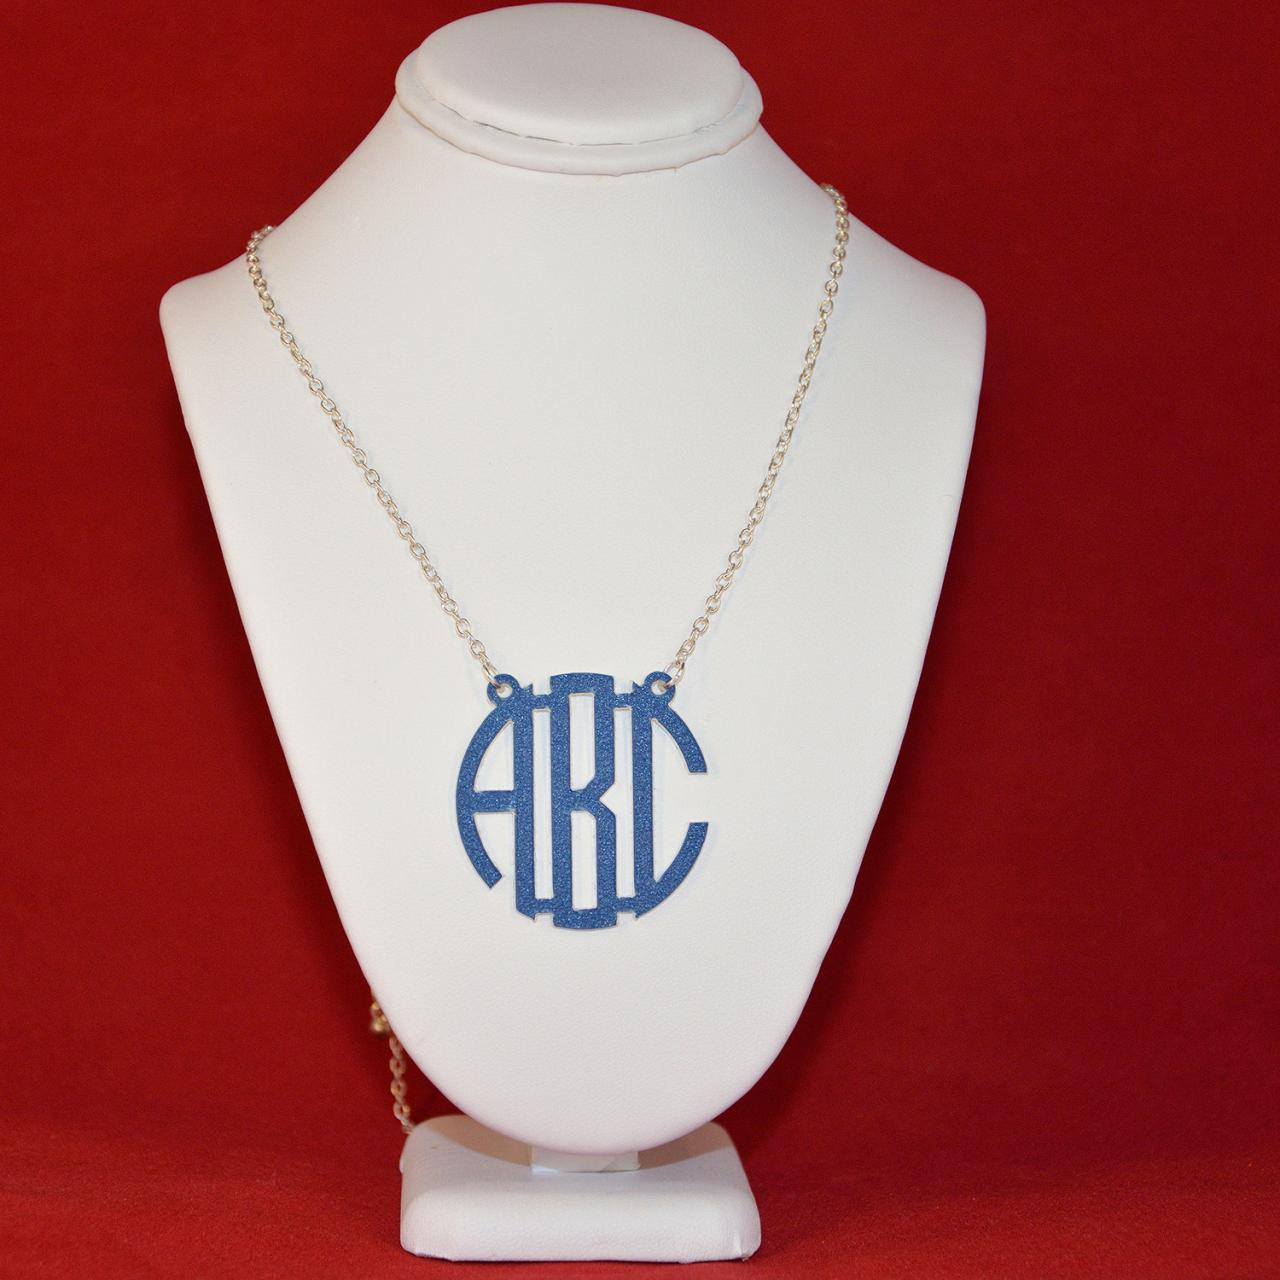 3 Initials Monogram Necklace - 1.5 inch Vine Personalized Monogram Custom Lasercut